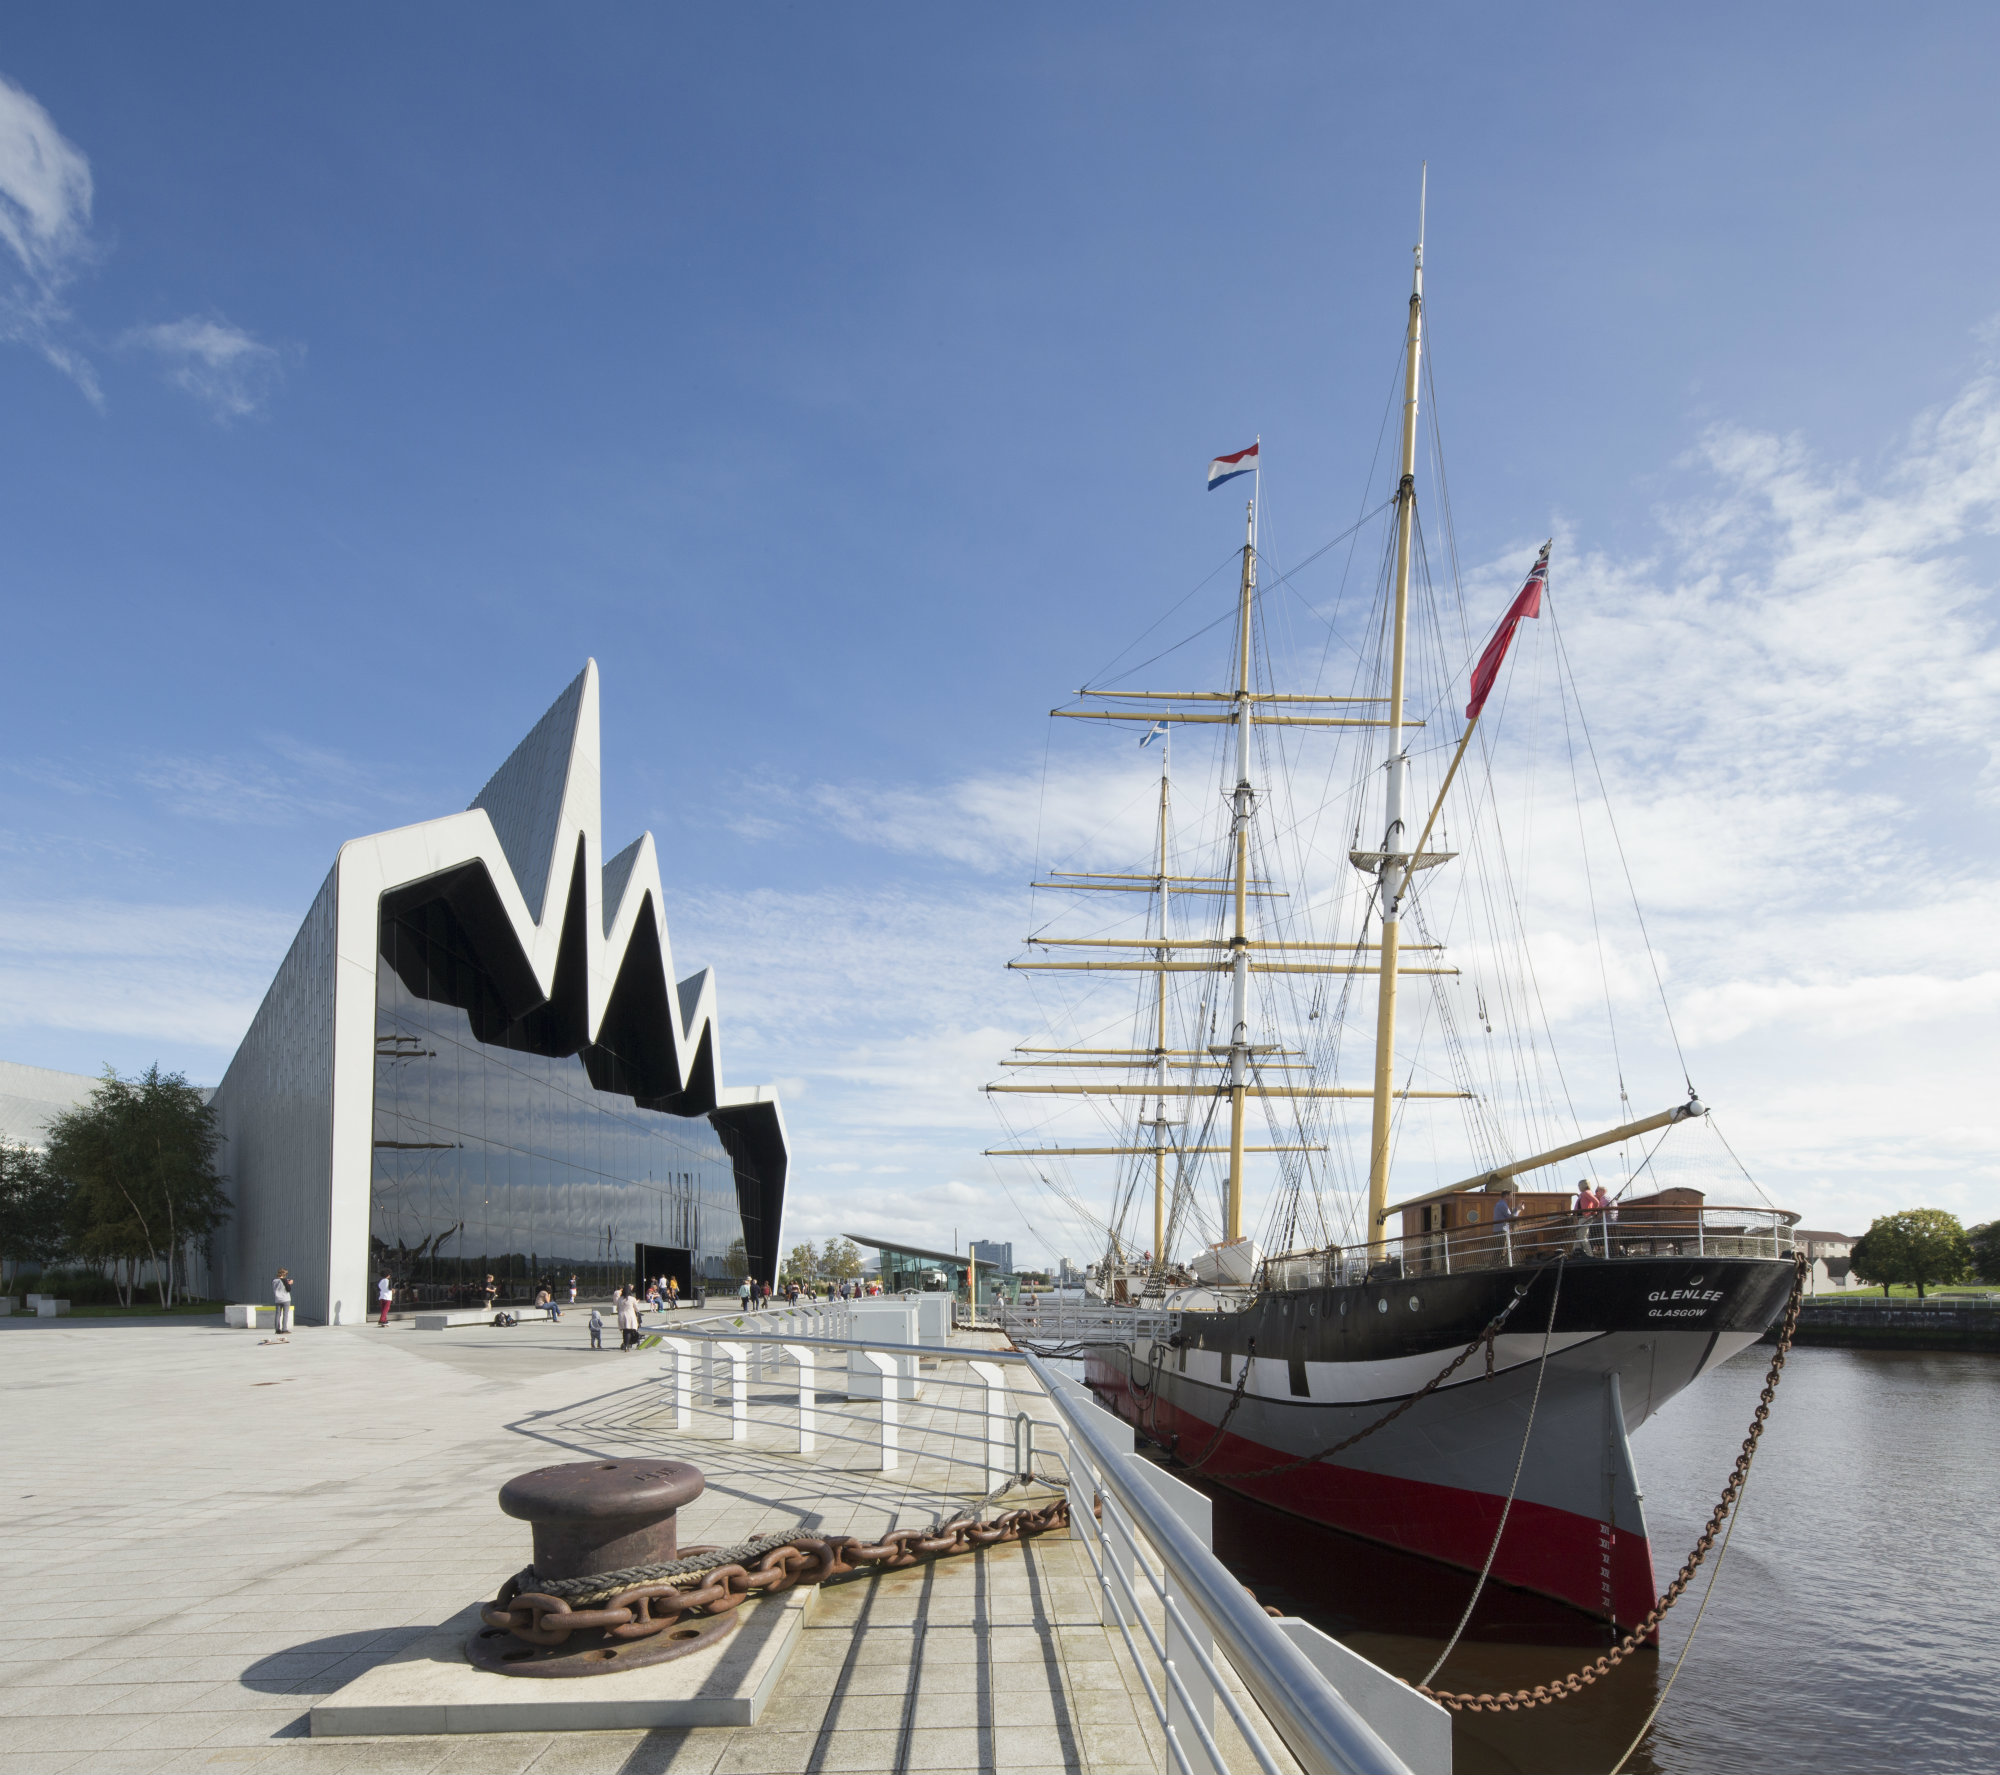 Modern glass and steel with pointed roof and tall ship in foreground